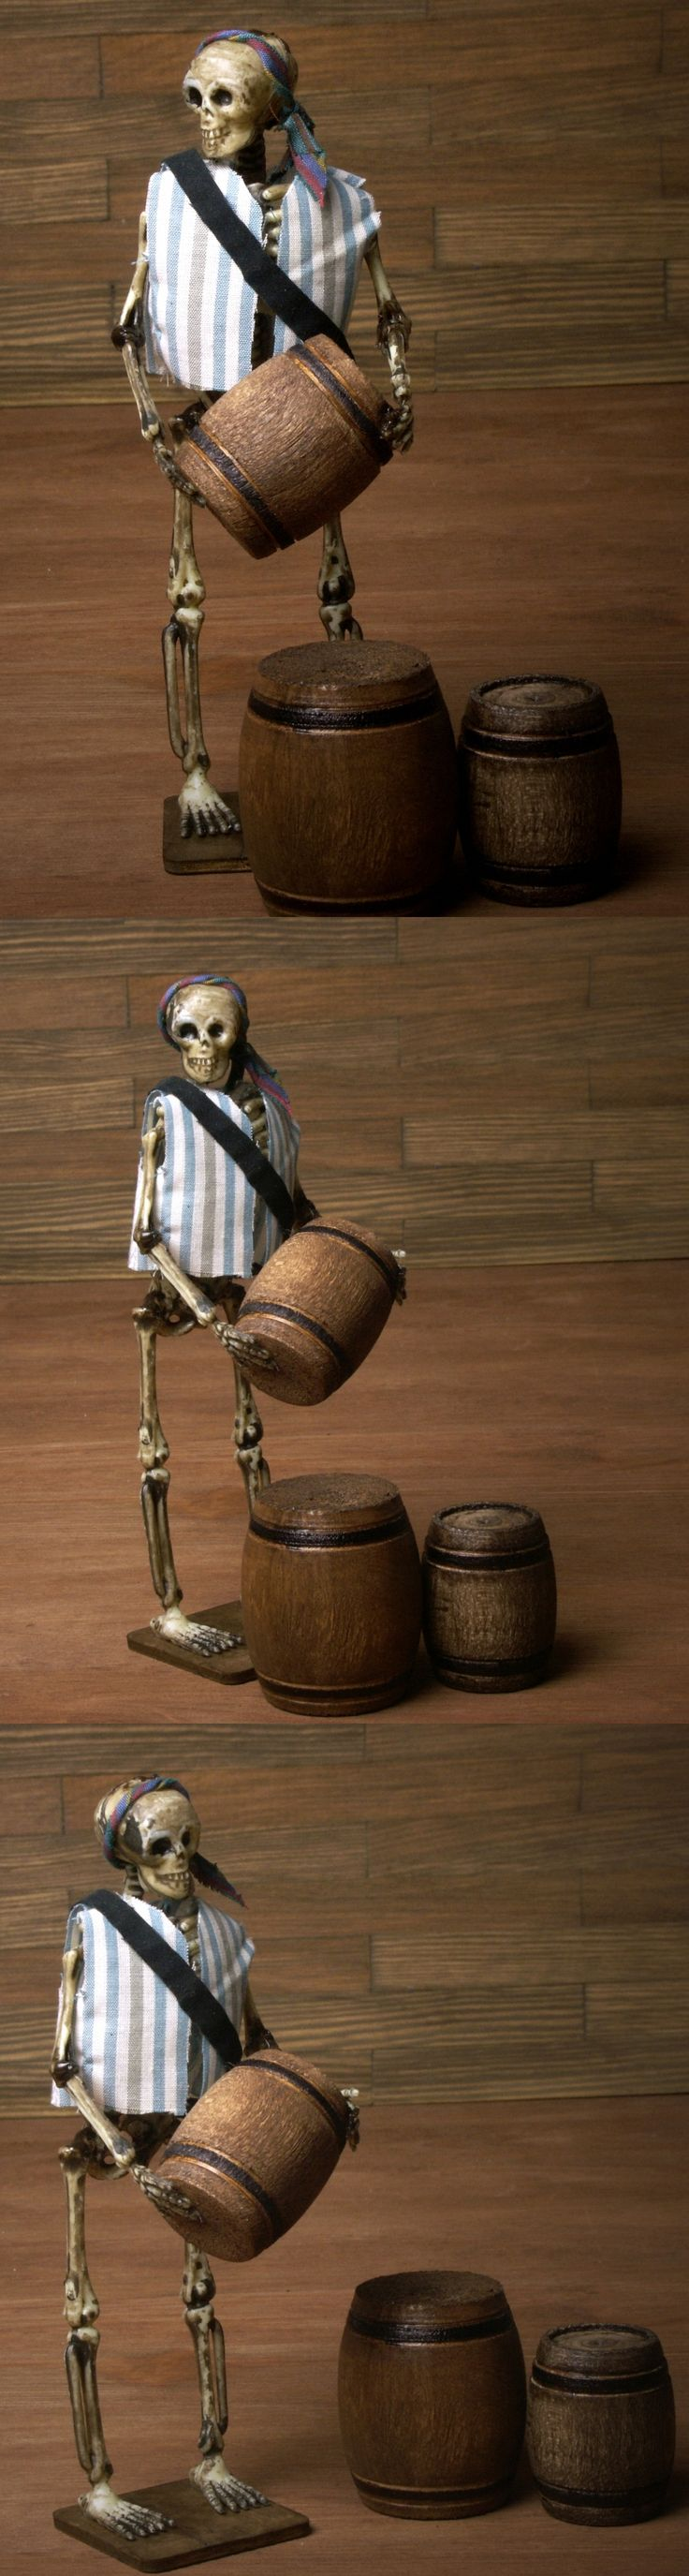 Miniature Skeleton Pirate with Barrels for your Dollhouse or Miniature Halloween Scene by DinkyWorld on Etsy